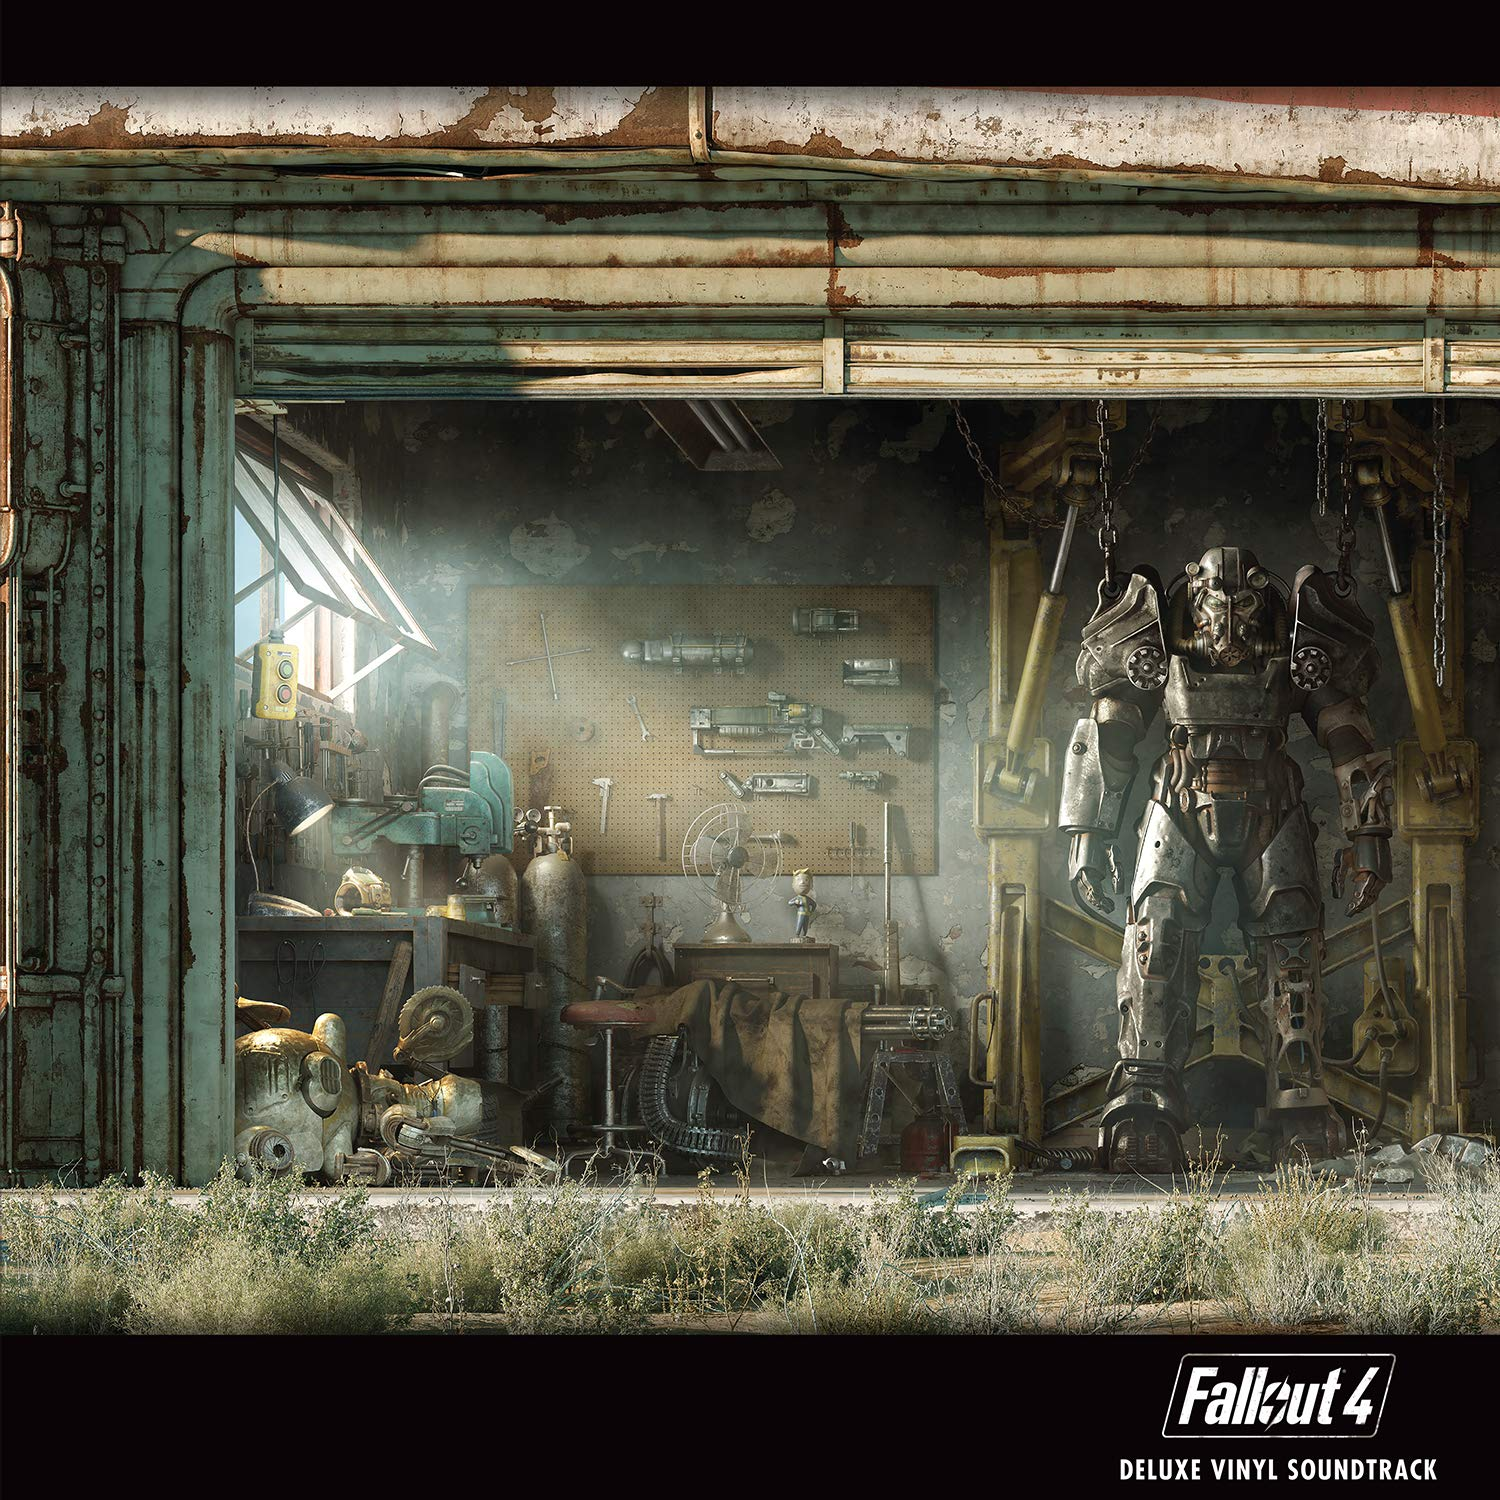 Fallout 4: Special Extended Edition Original Soundtrack Vinyl Set gets release date